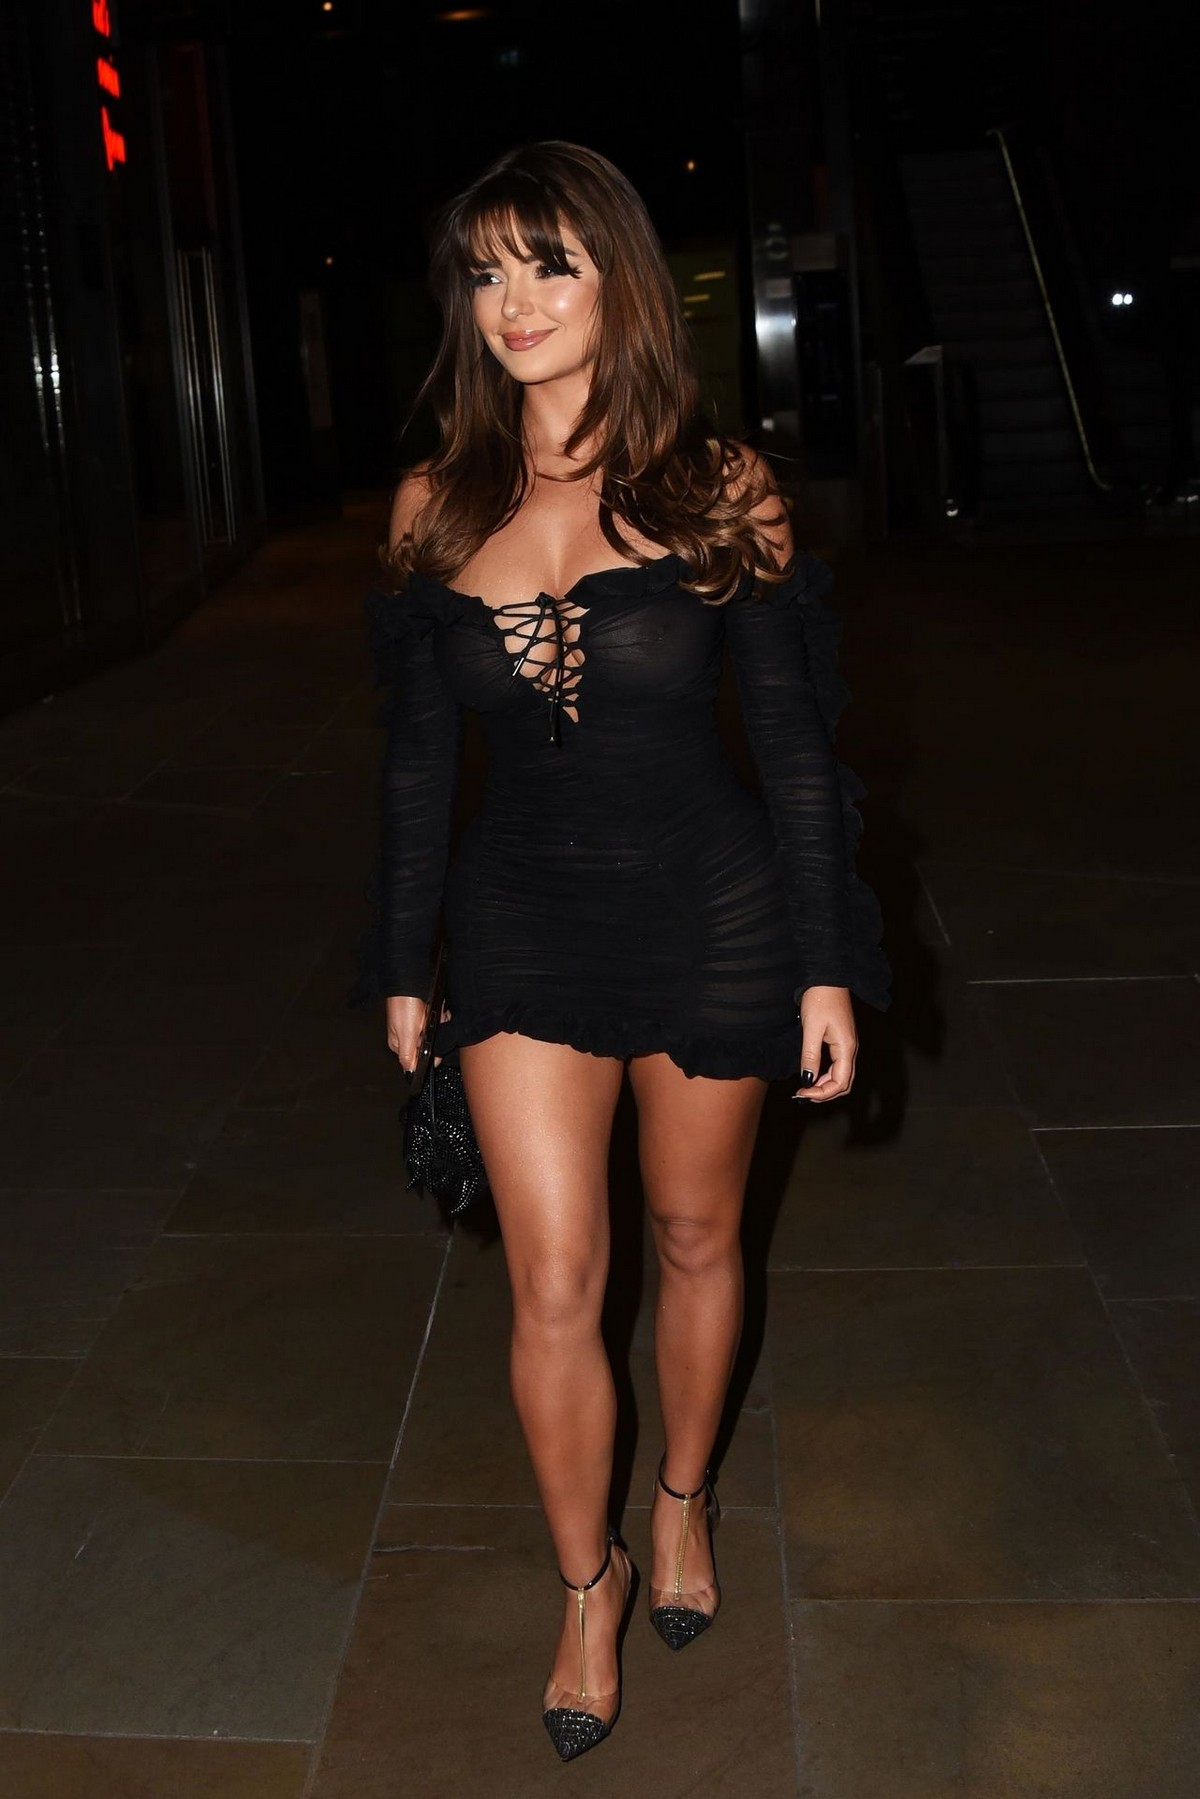 Demi Rose Mawby seen in Stylish Short Dress at The Skinny Tan Choc Range launch party in Madison, London 2019/11/19 11